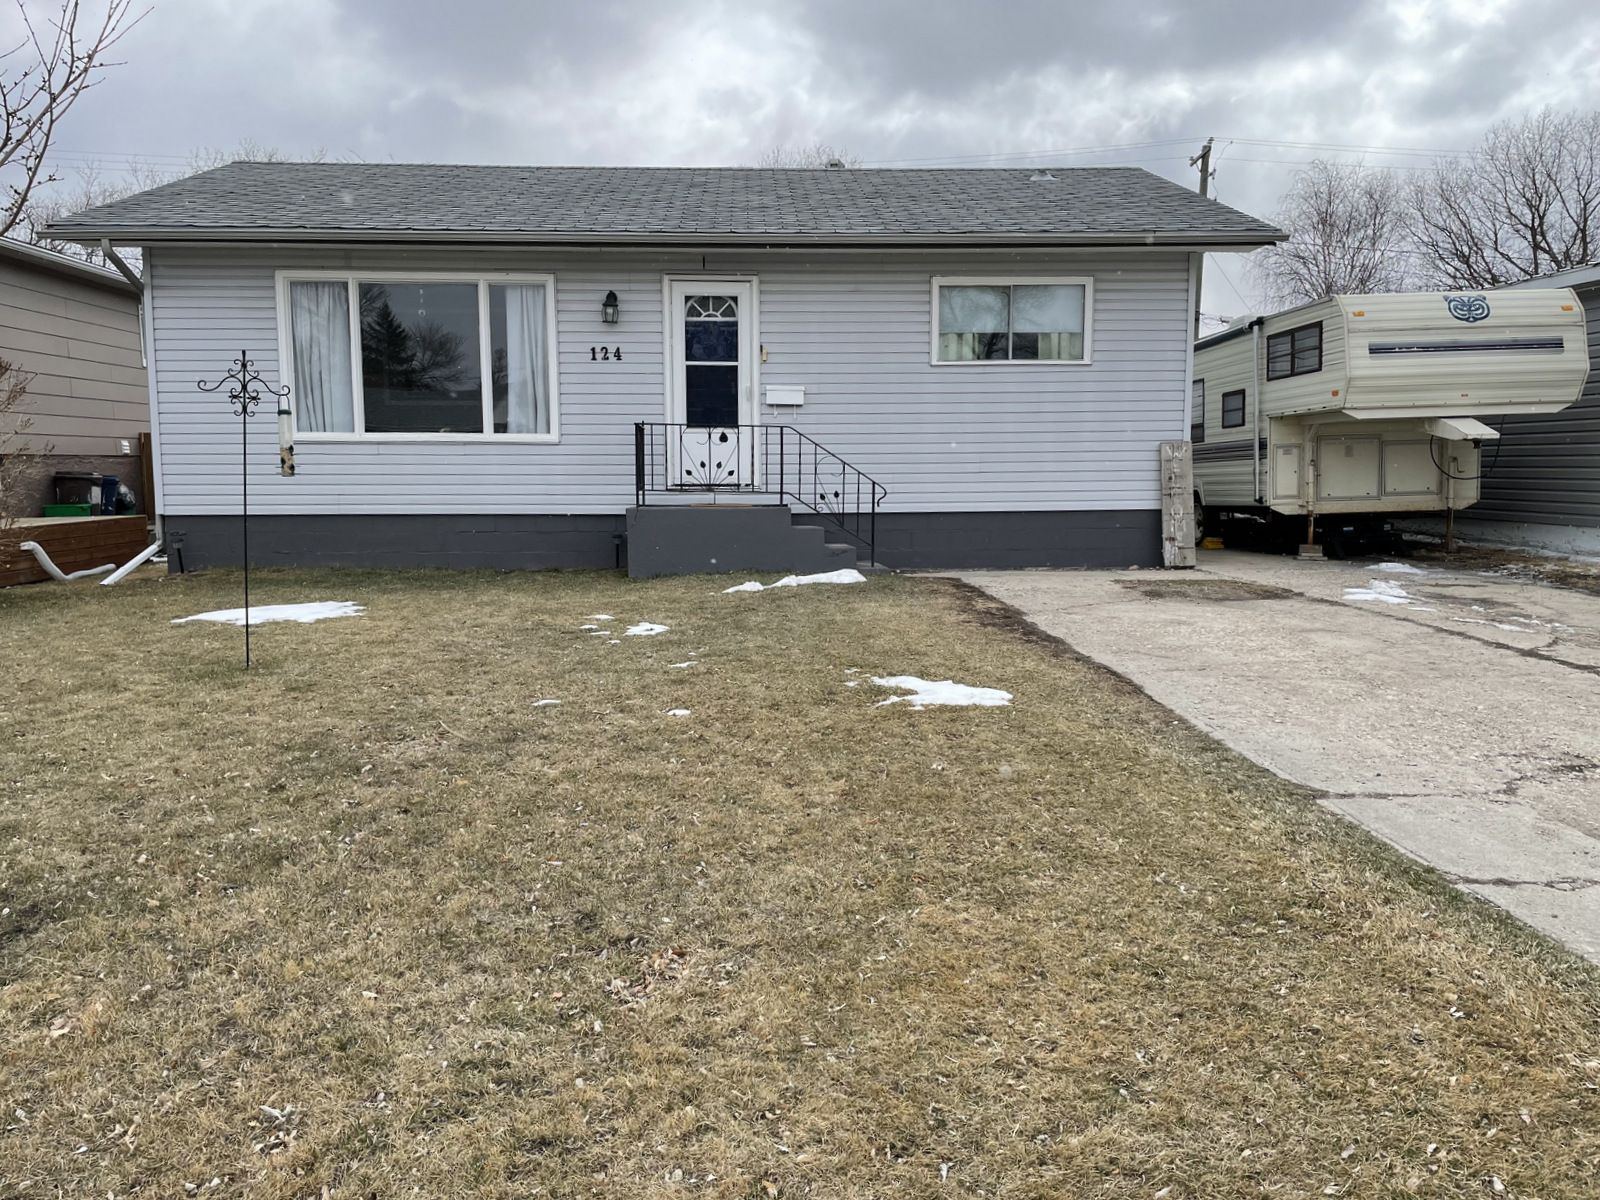 Main Photo: 124 8th Street NE in Portage la Prairie: House for sale : MLS®# 202109171